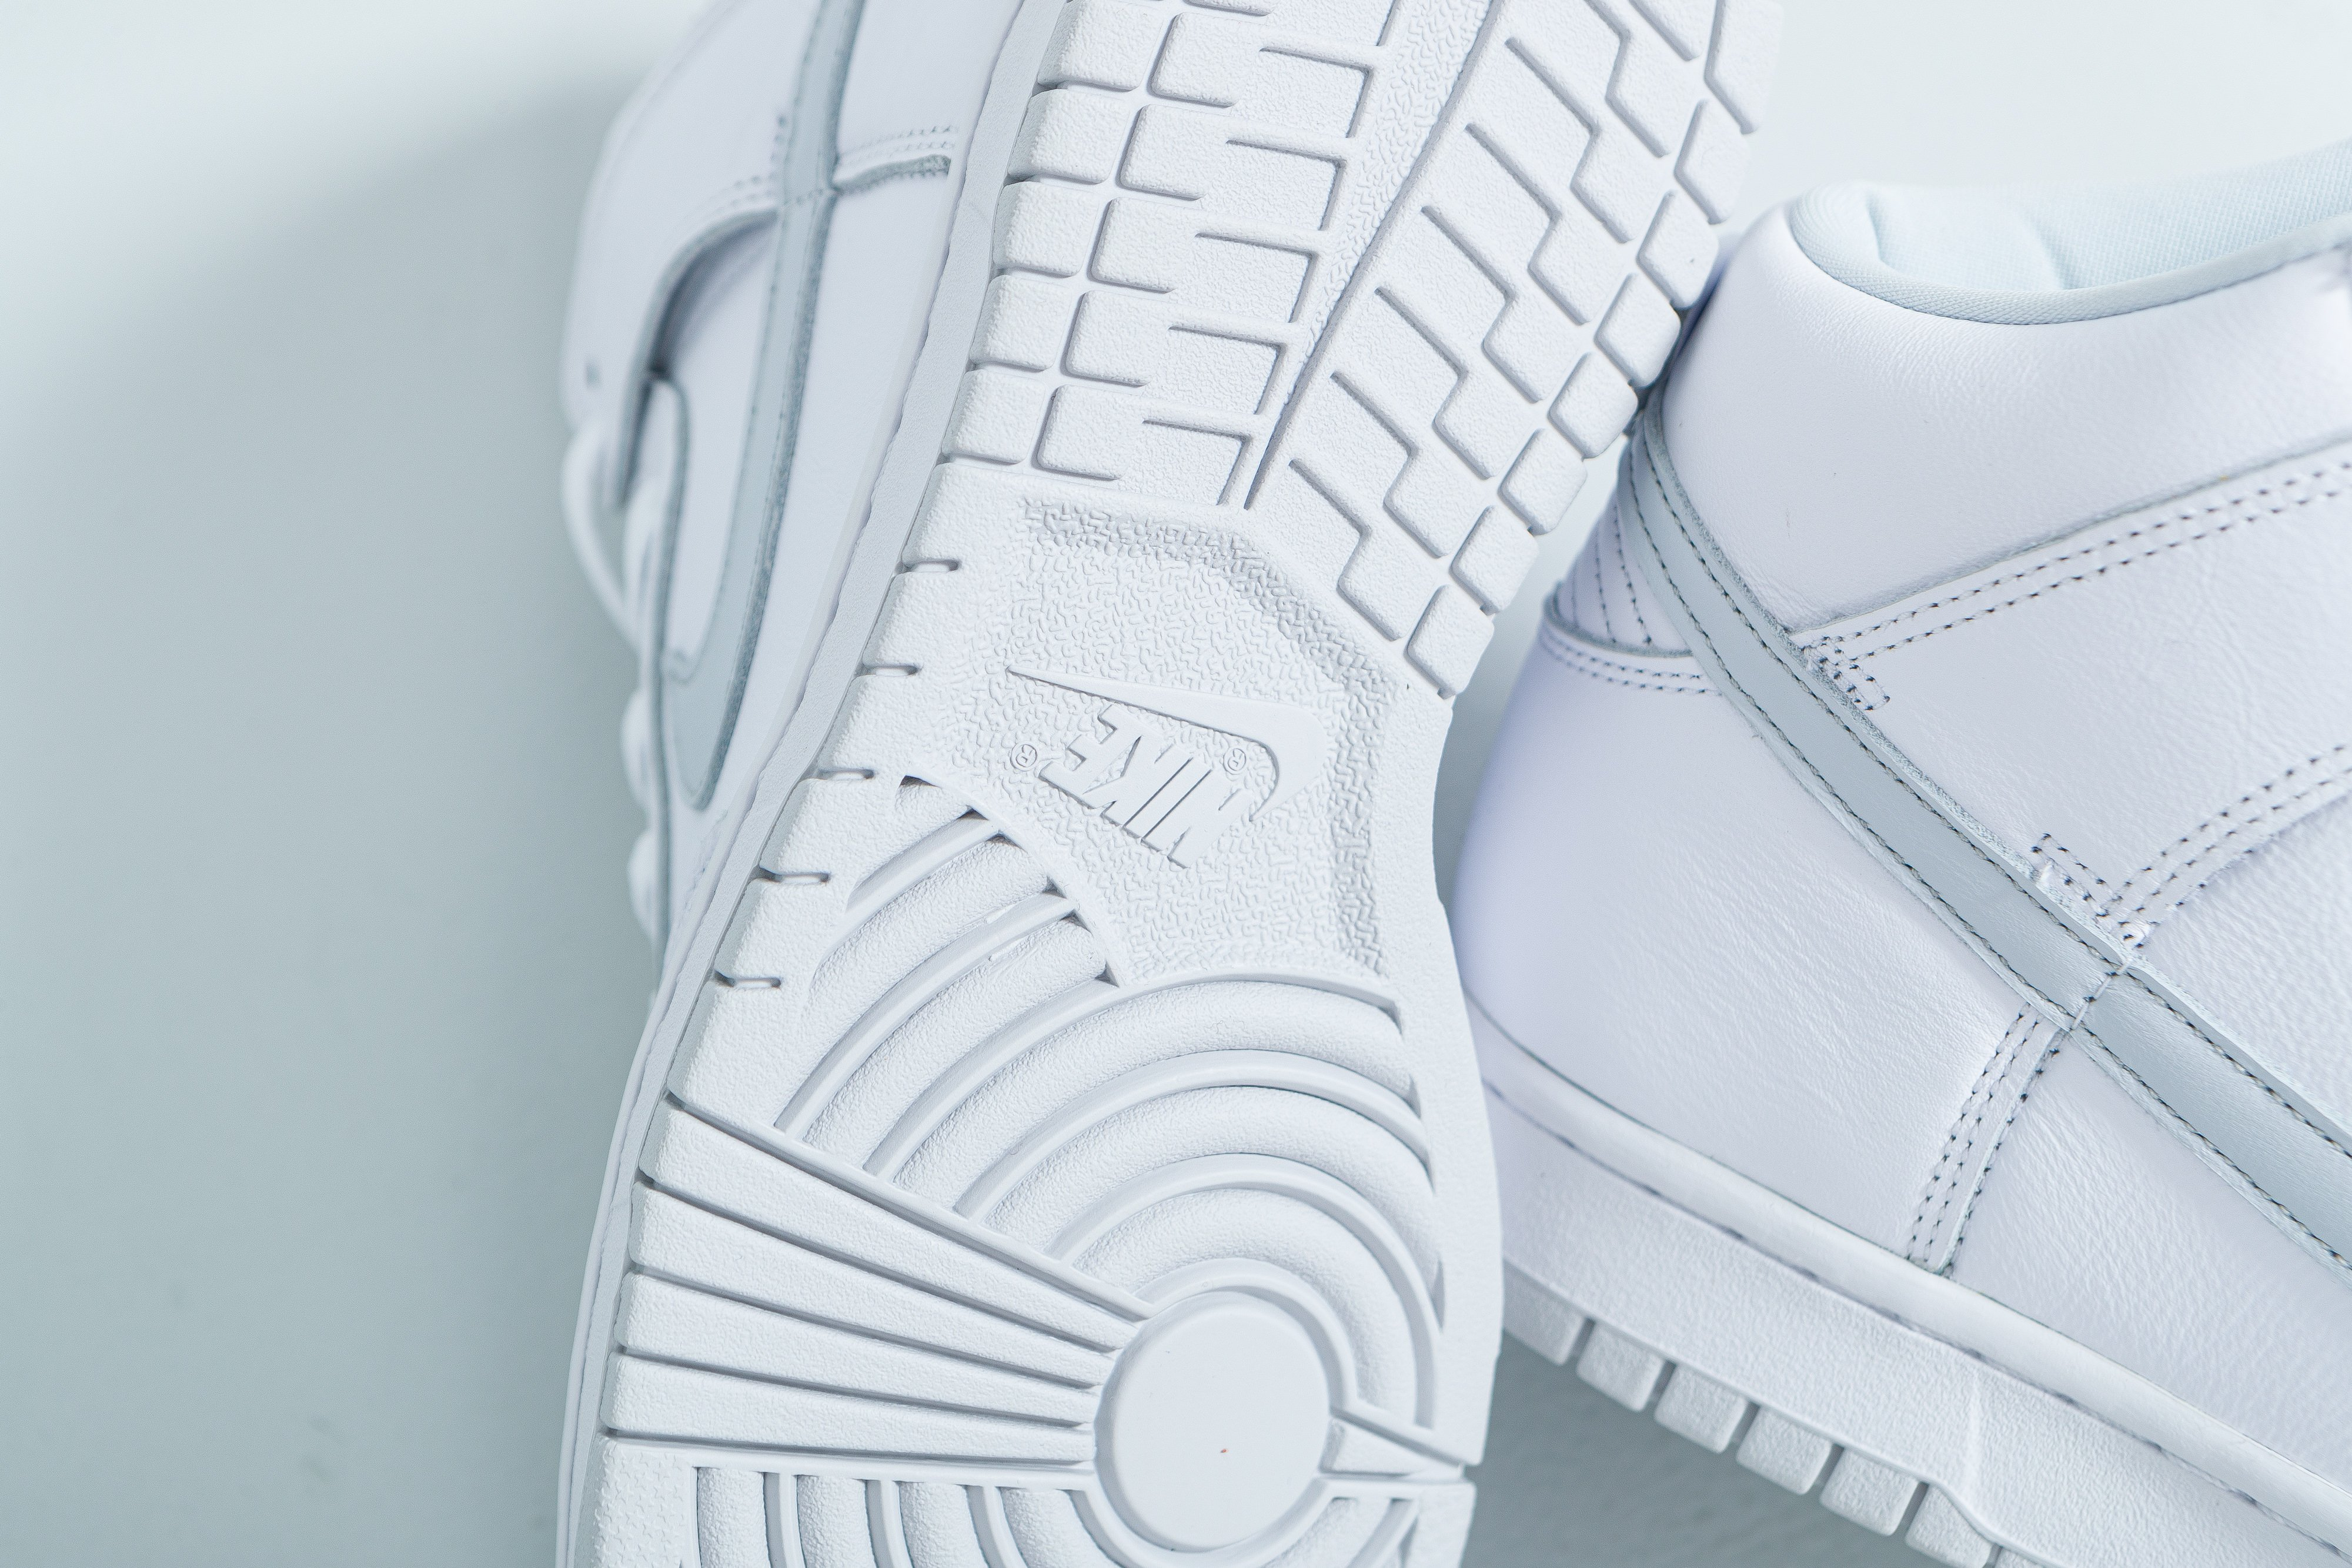 Up There Launches - Nike Dunk Hi SP 'Pure Platinum'